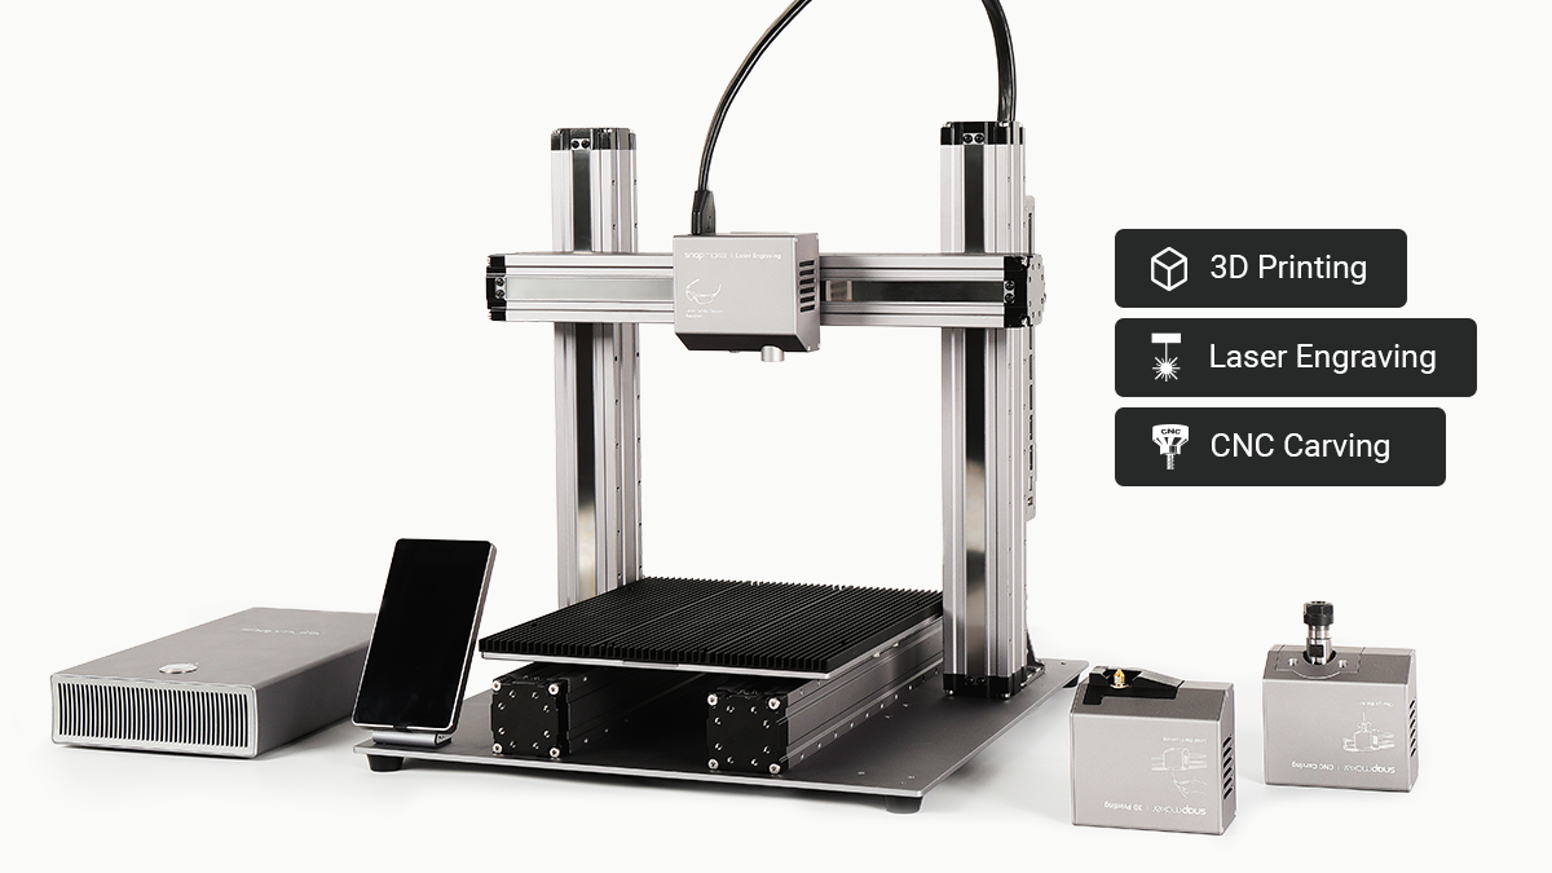 Unlock your full creative potential from 3D printing to laser engraving, cutting and CNC carving. Smarter, larger, and more powerful.